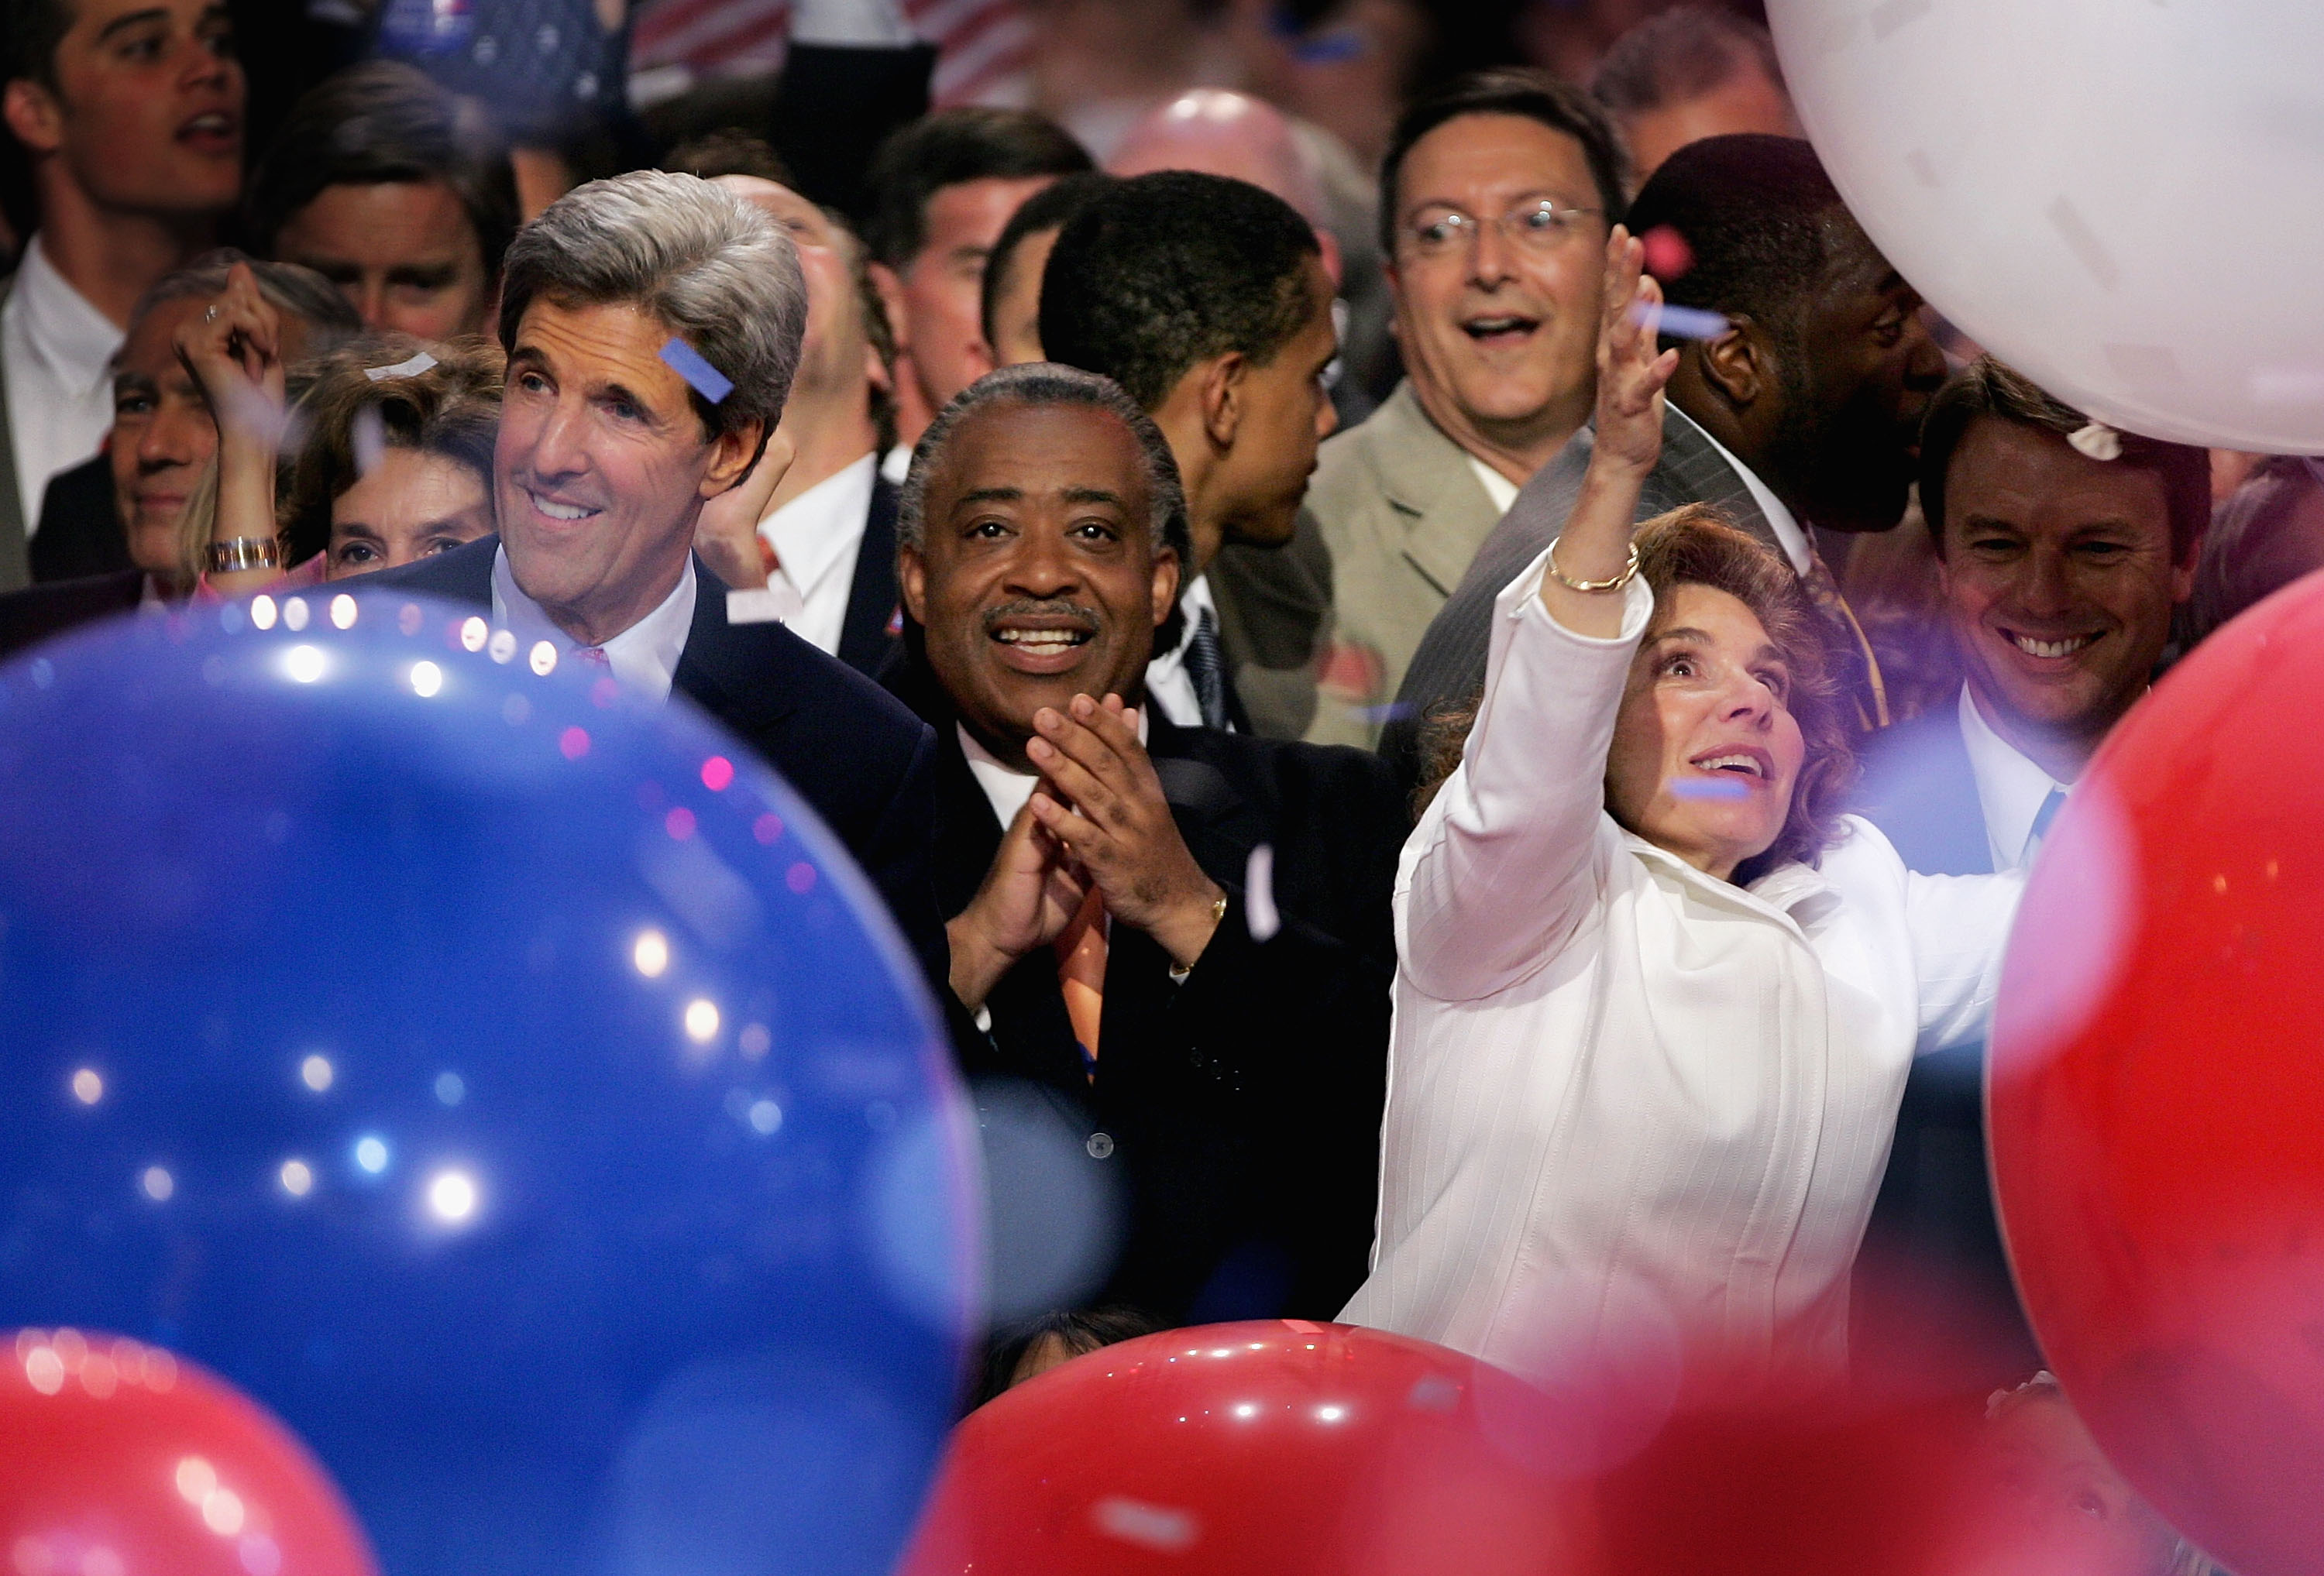 Senator John Kerry, the Reverend Al Sharpton, and Teresa Heinz Kerry celebrate Kerry's nomination for Democratic Presidential candidate onstage during the Democratic National Convention in Boston on July 29, 2004.